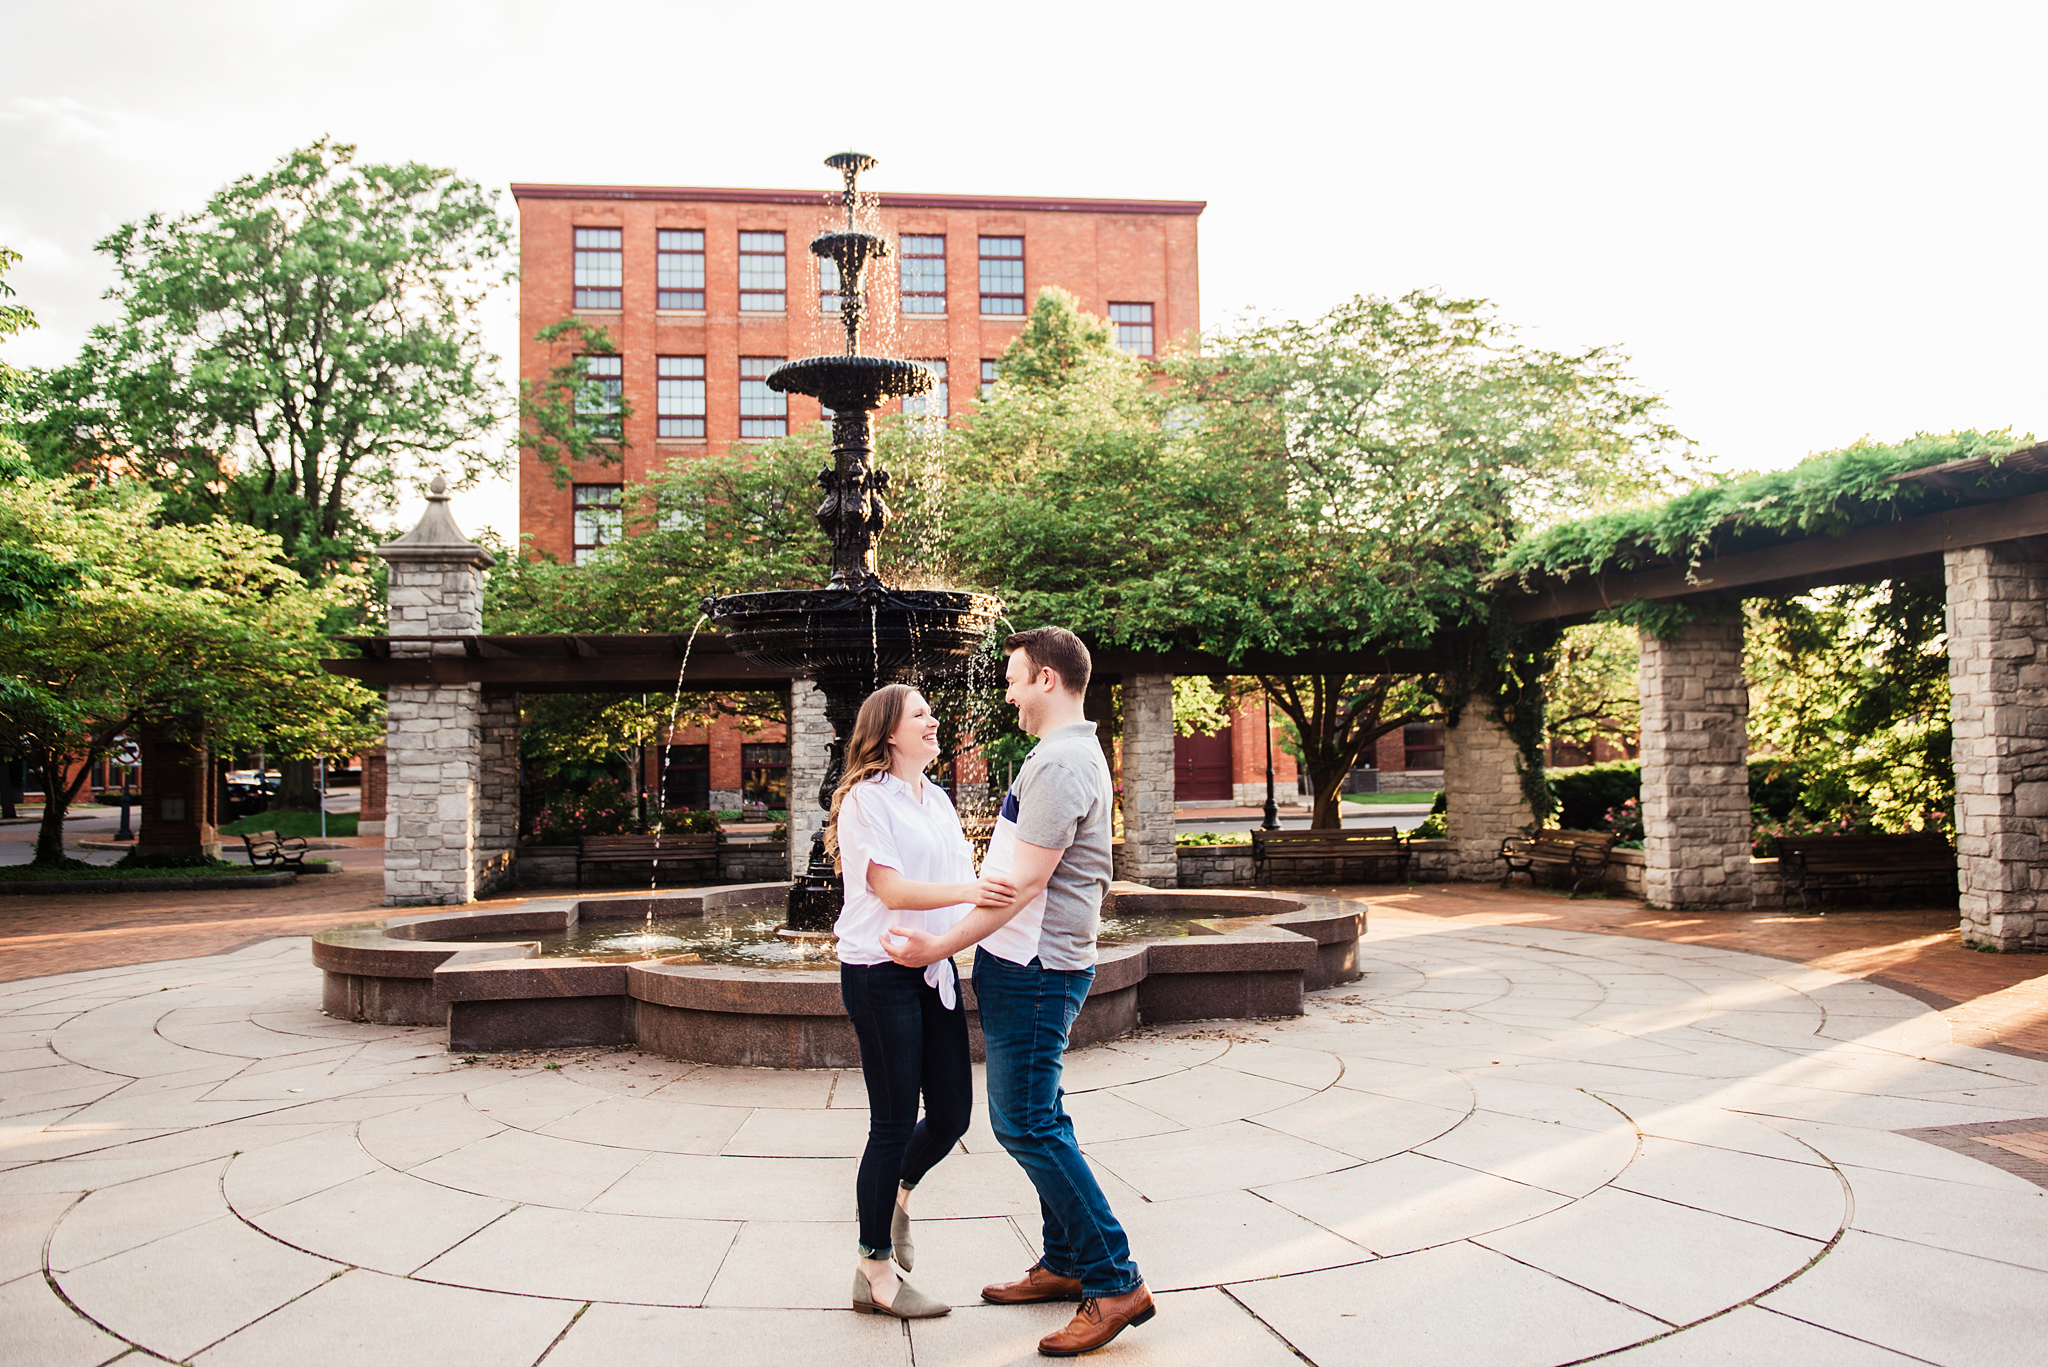 Franklin_Square_Park_Syracuse_Engagement_Session_JILL_STUDIO_Rochester_NY_Photographer_DSC_3945.jpg